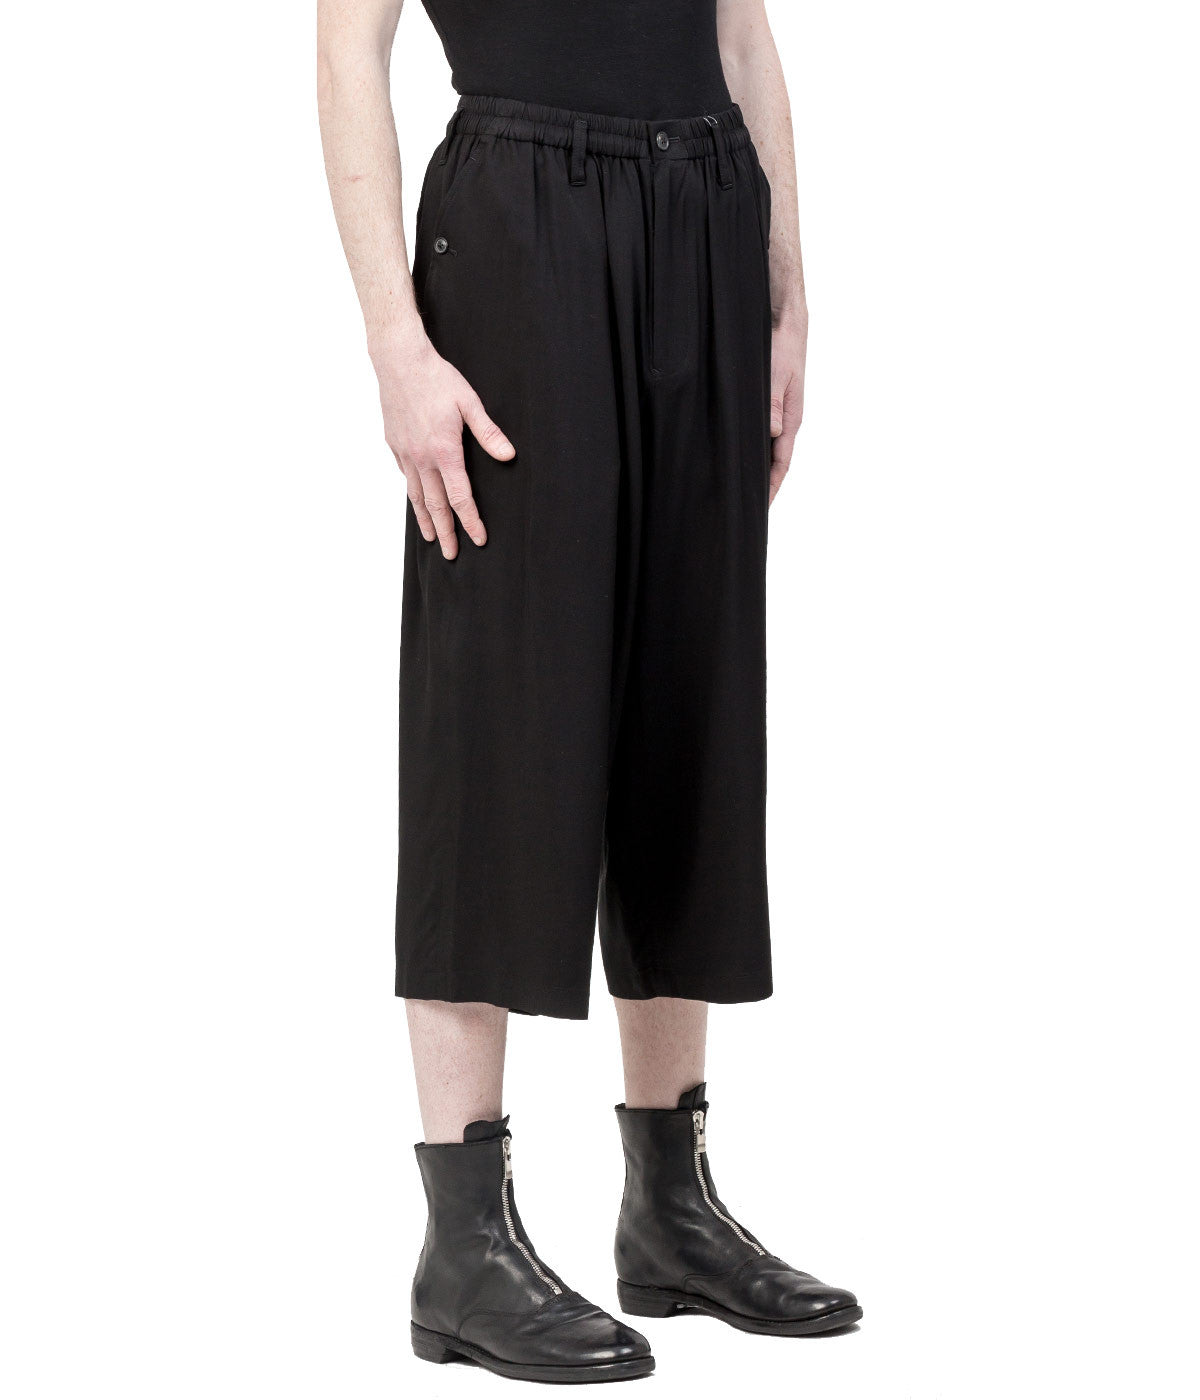 Black Gathered Waist Pants